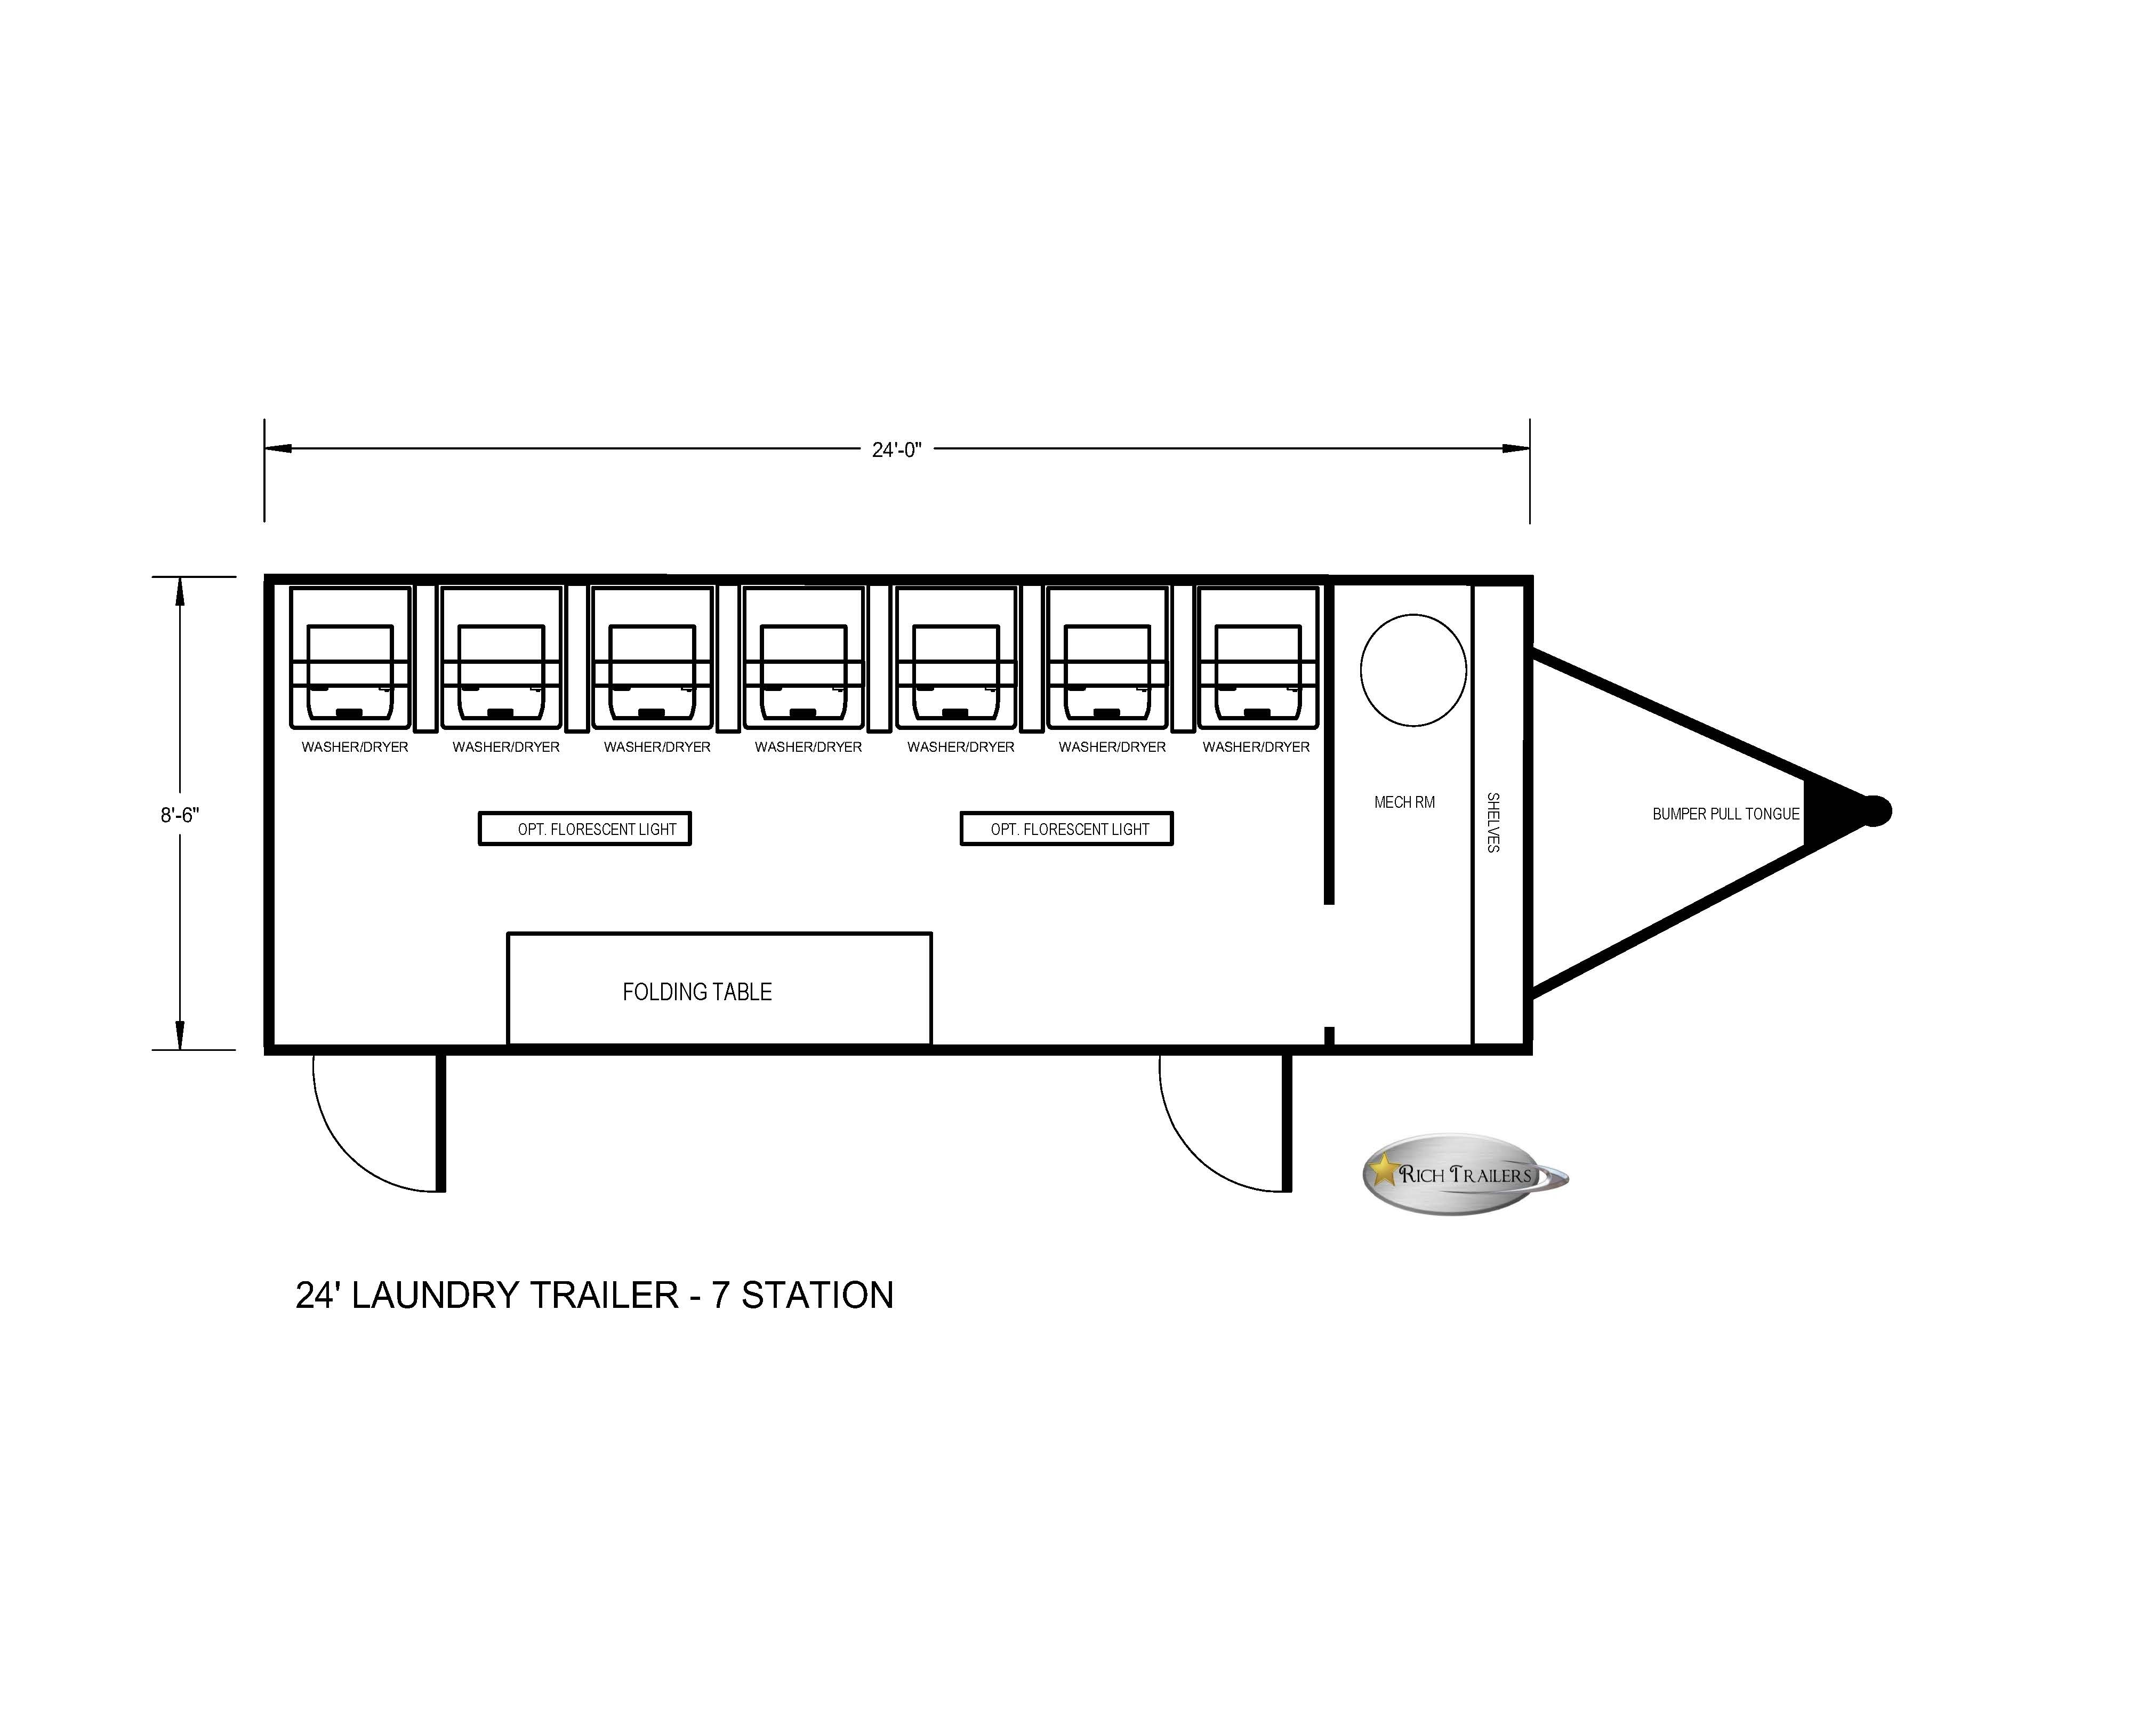 Laundry trailer with 7 stackable washers and dryers